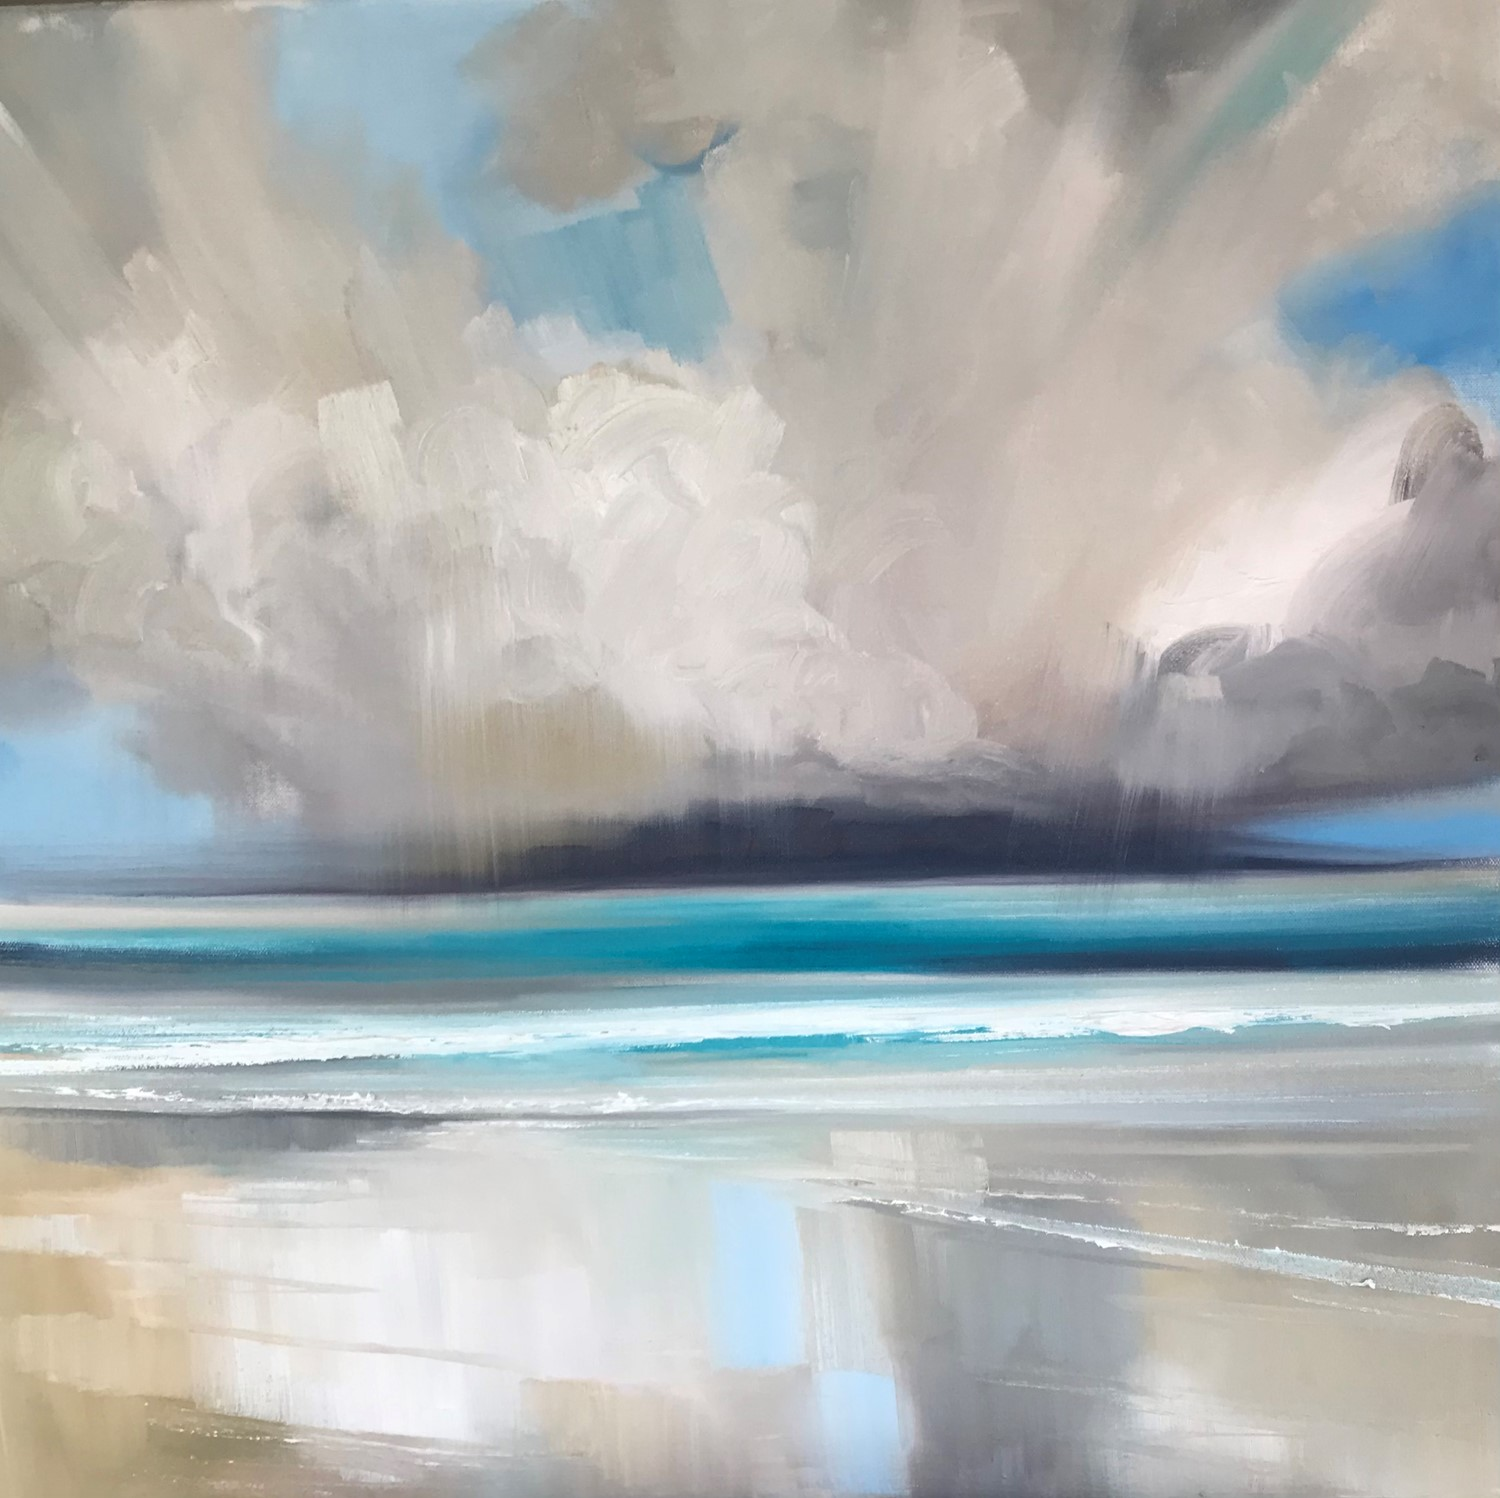 'In love with Arisaig' by artist Rosanne Barr